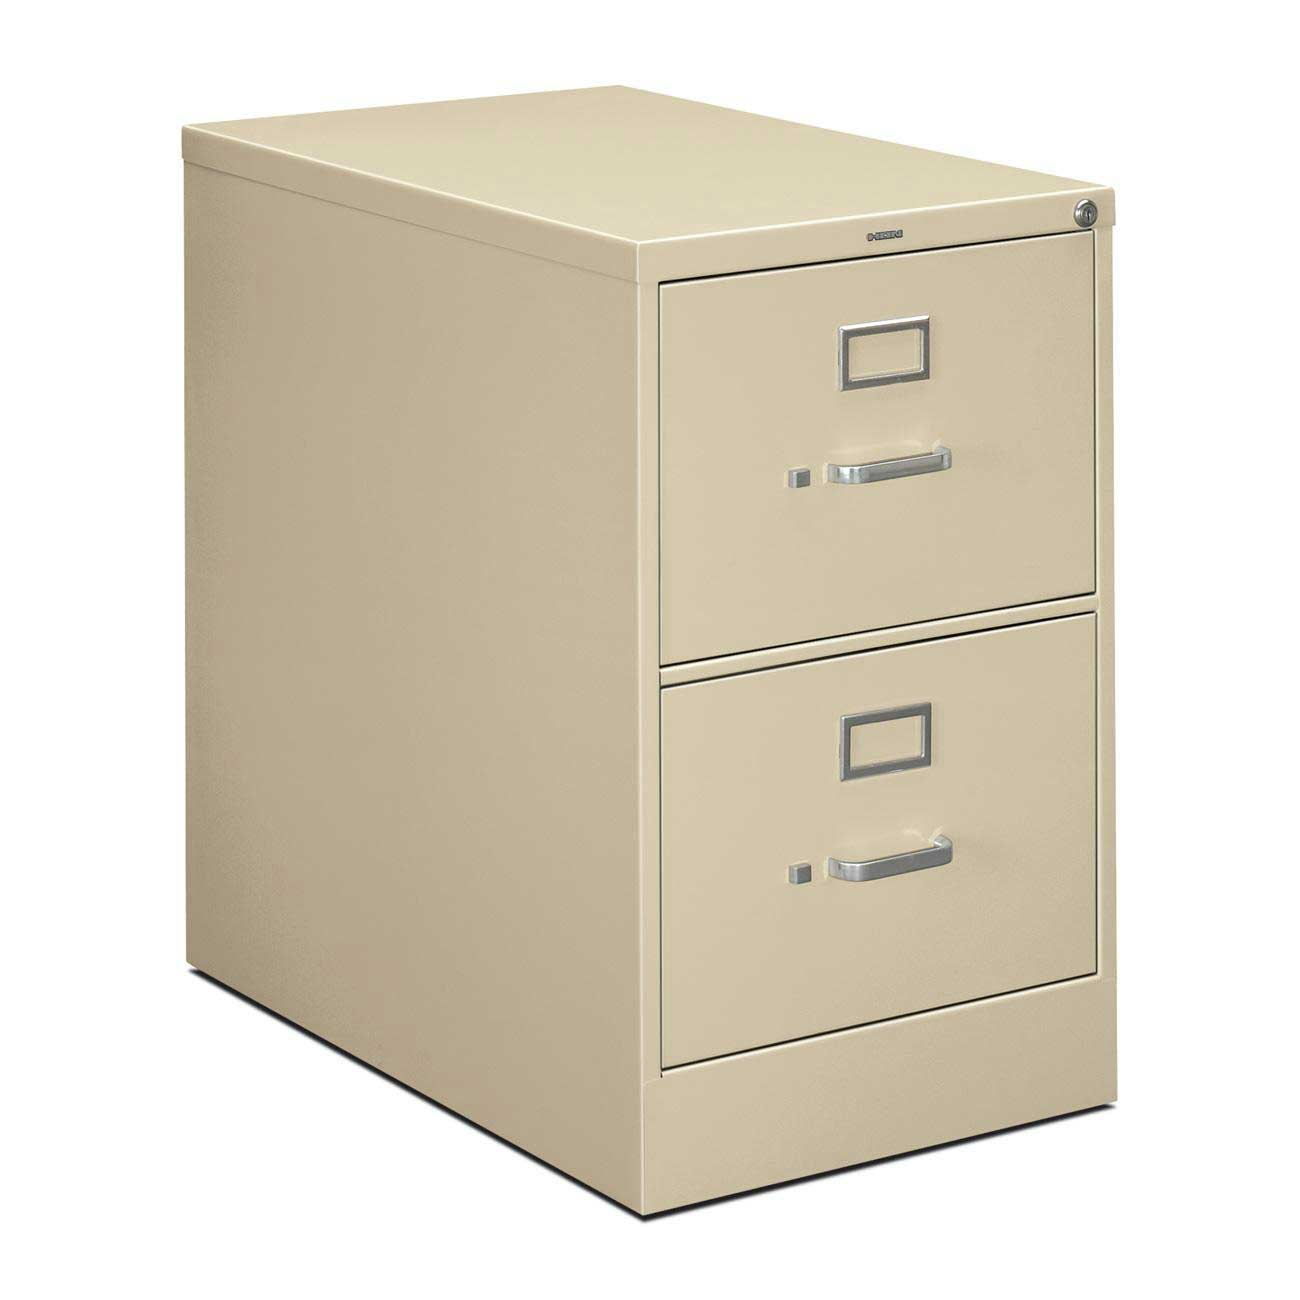 Picture of: Vertical Metal File Cabinet